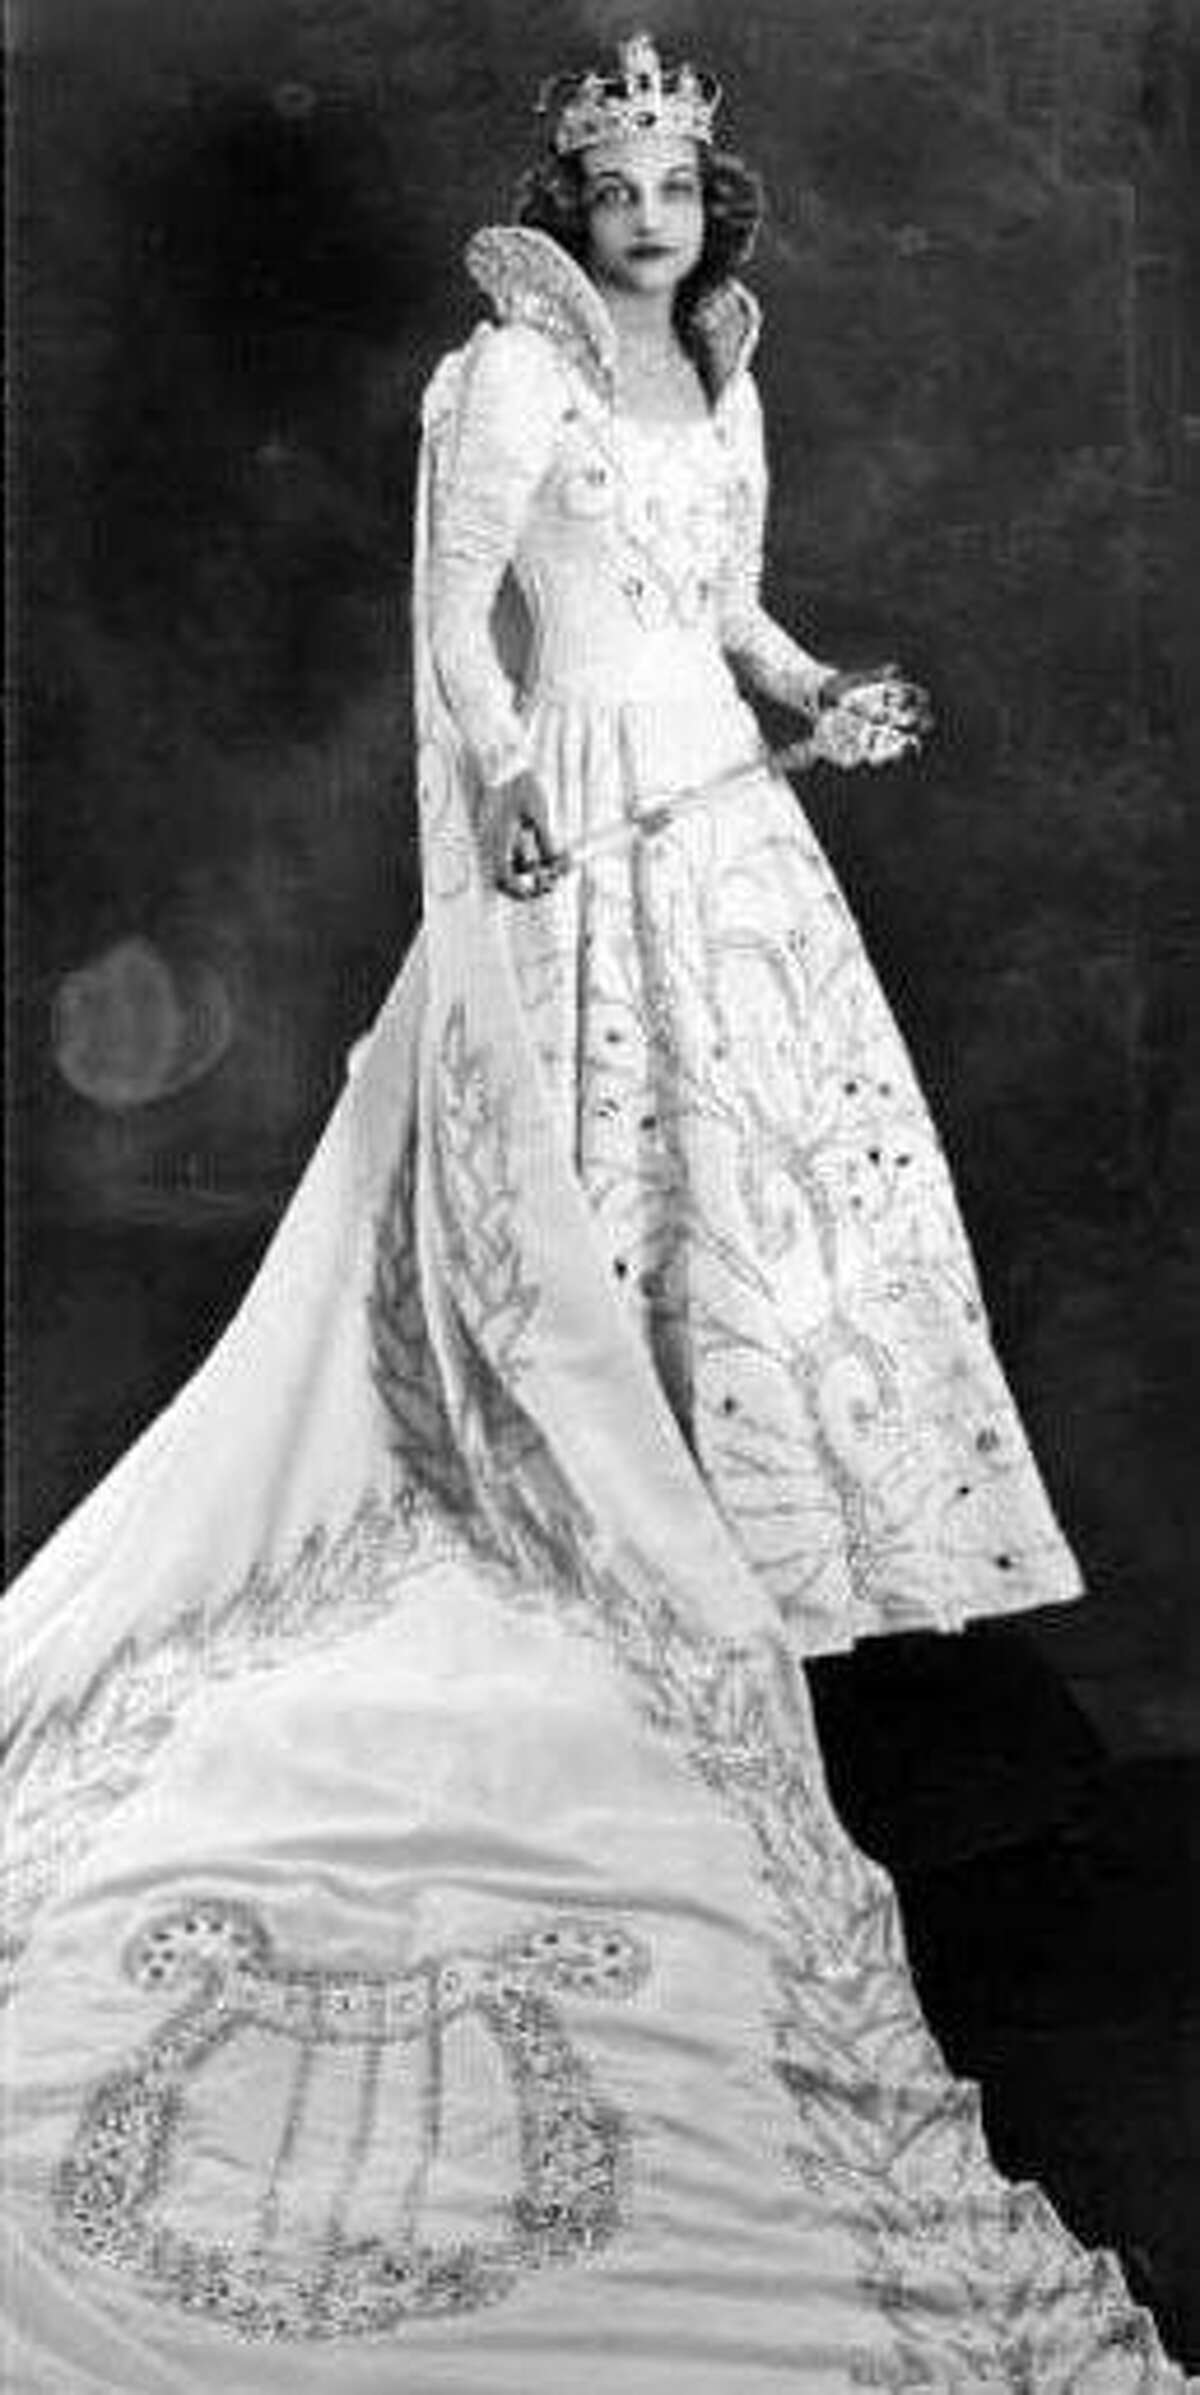 Anne Elizabeth Wright was Queen of the Order of the Alamo the year before she married Gordon Custer Leland, who trained in San Antonio as an Army Air Corps pilot.